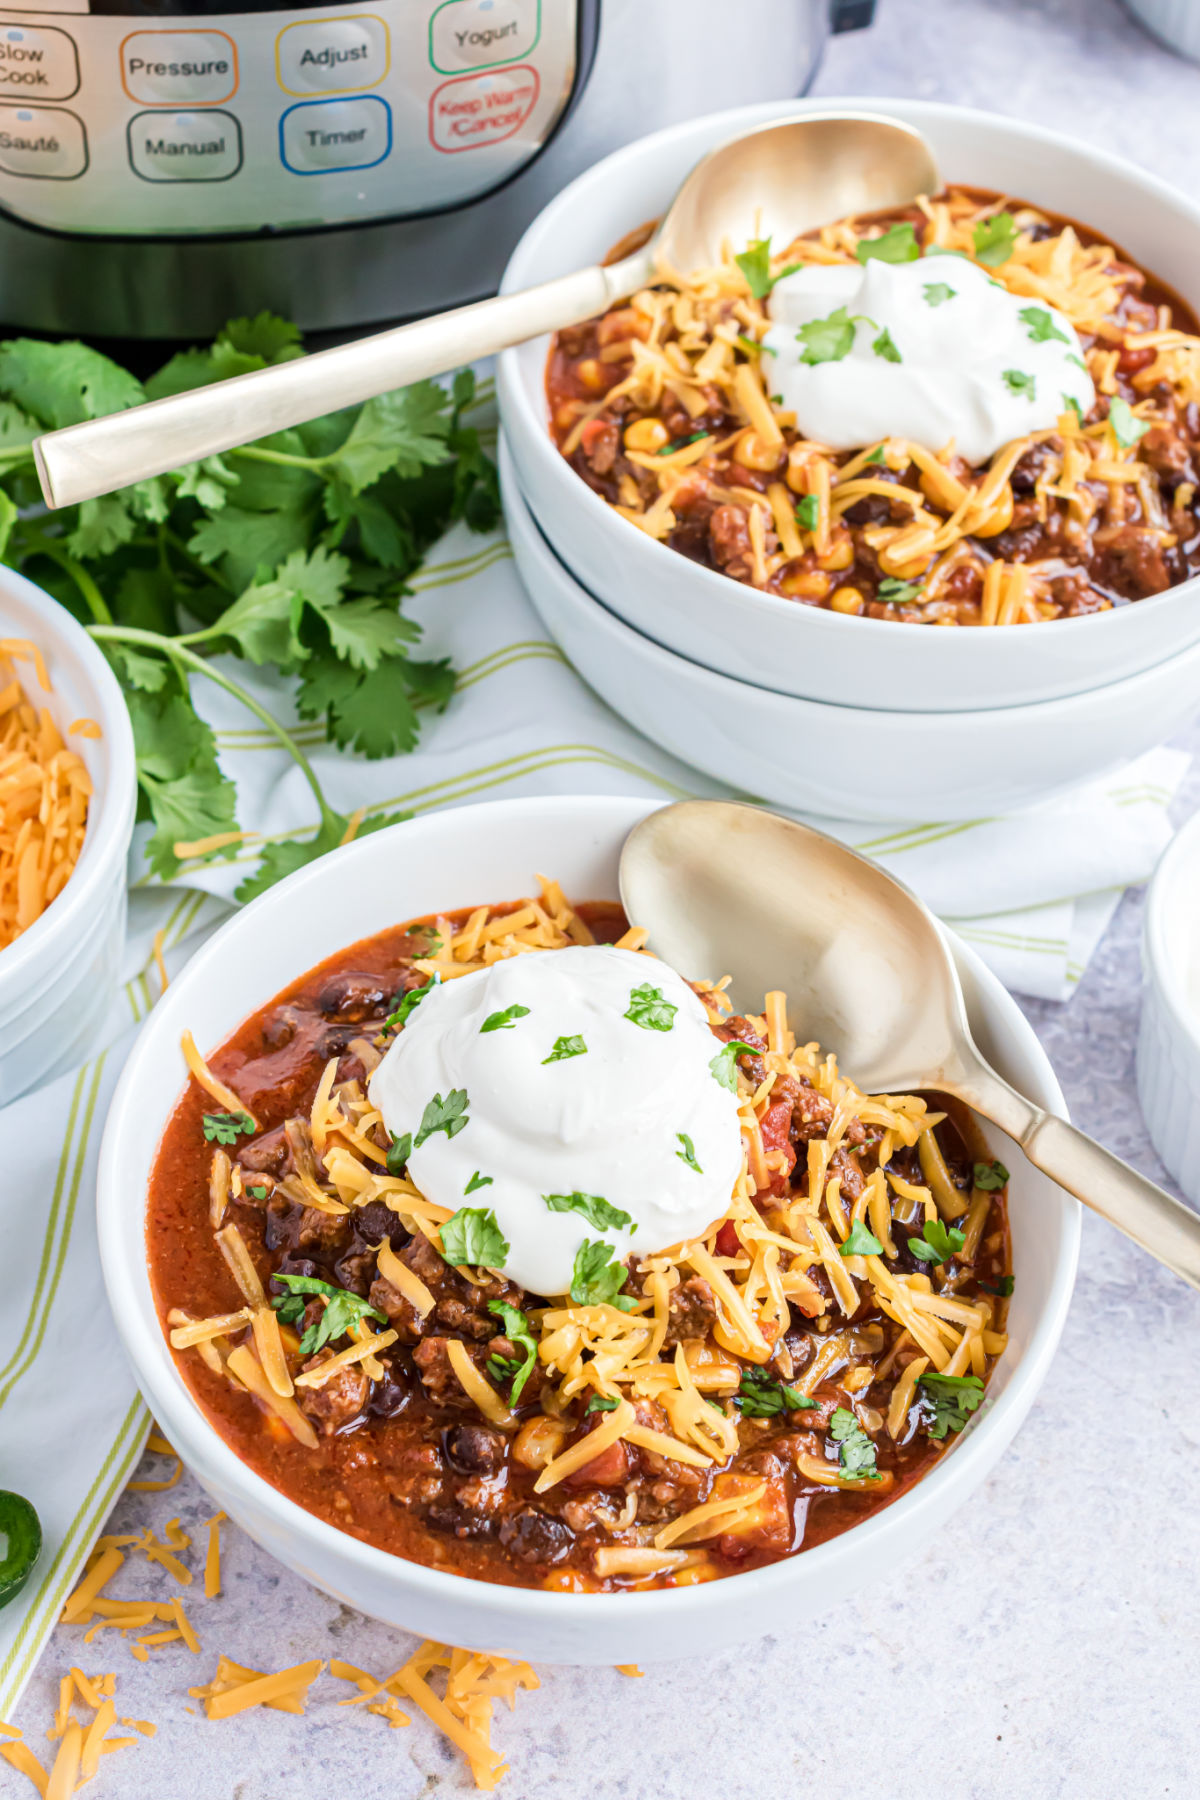 Taco chili served in a bowl with cheese, sour cream, and cilantro.